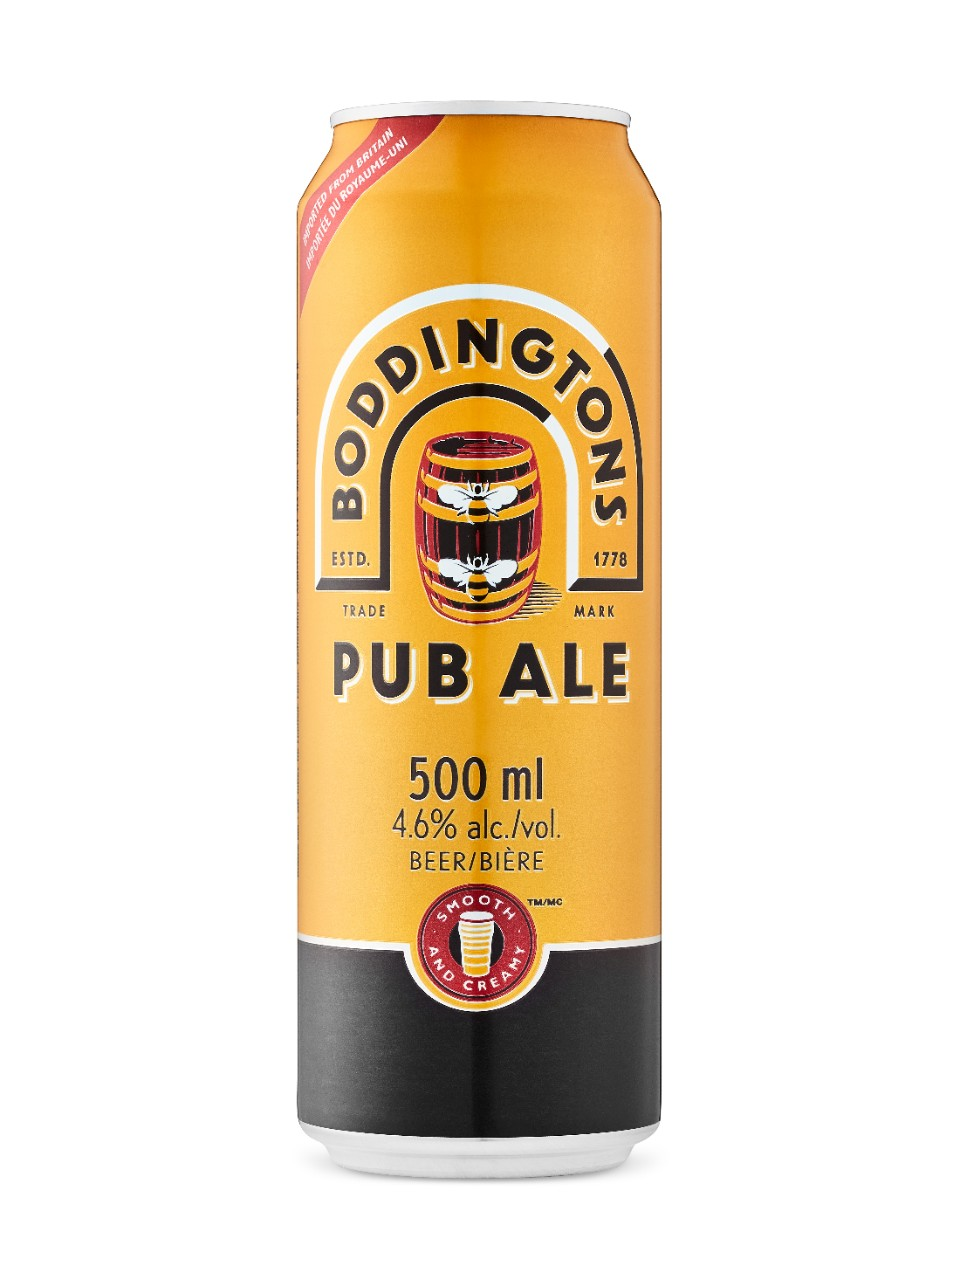 Boddingtons from LCBO